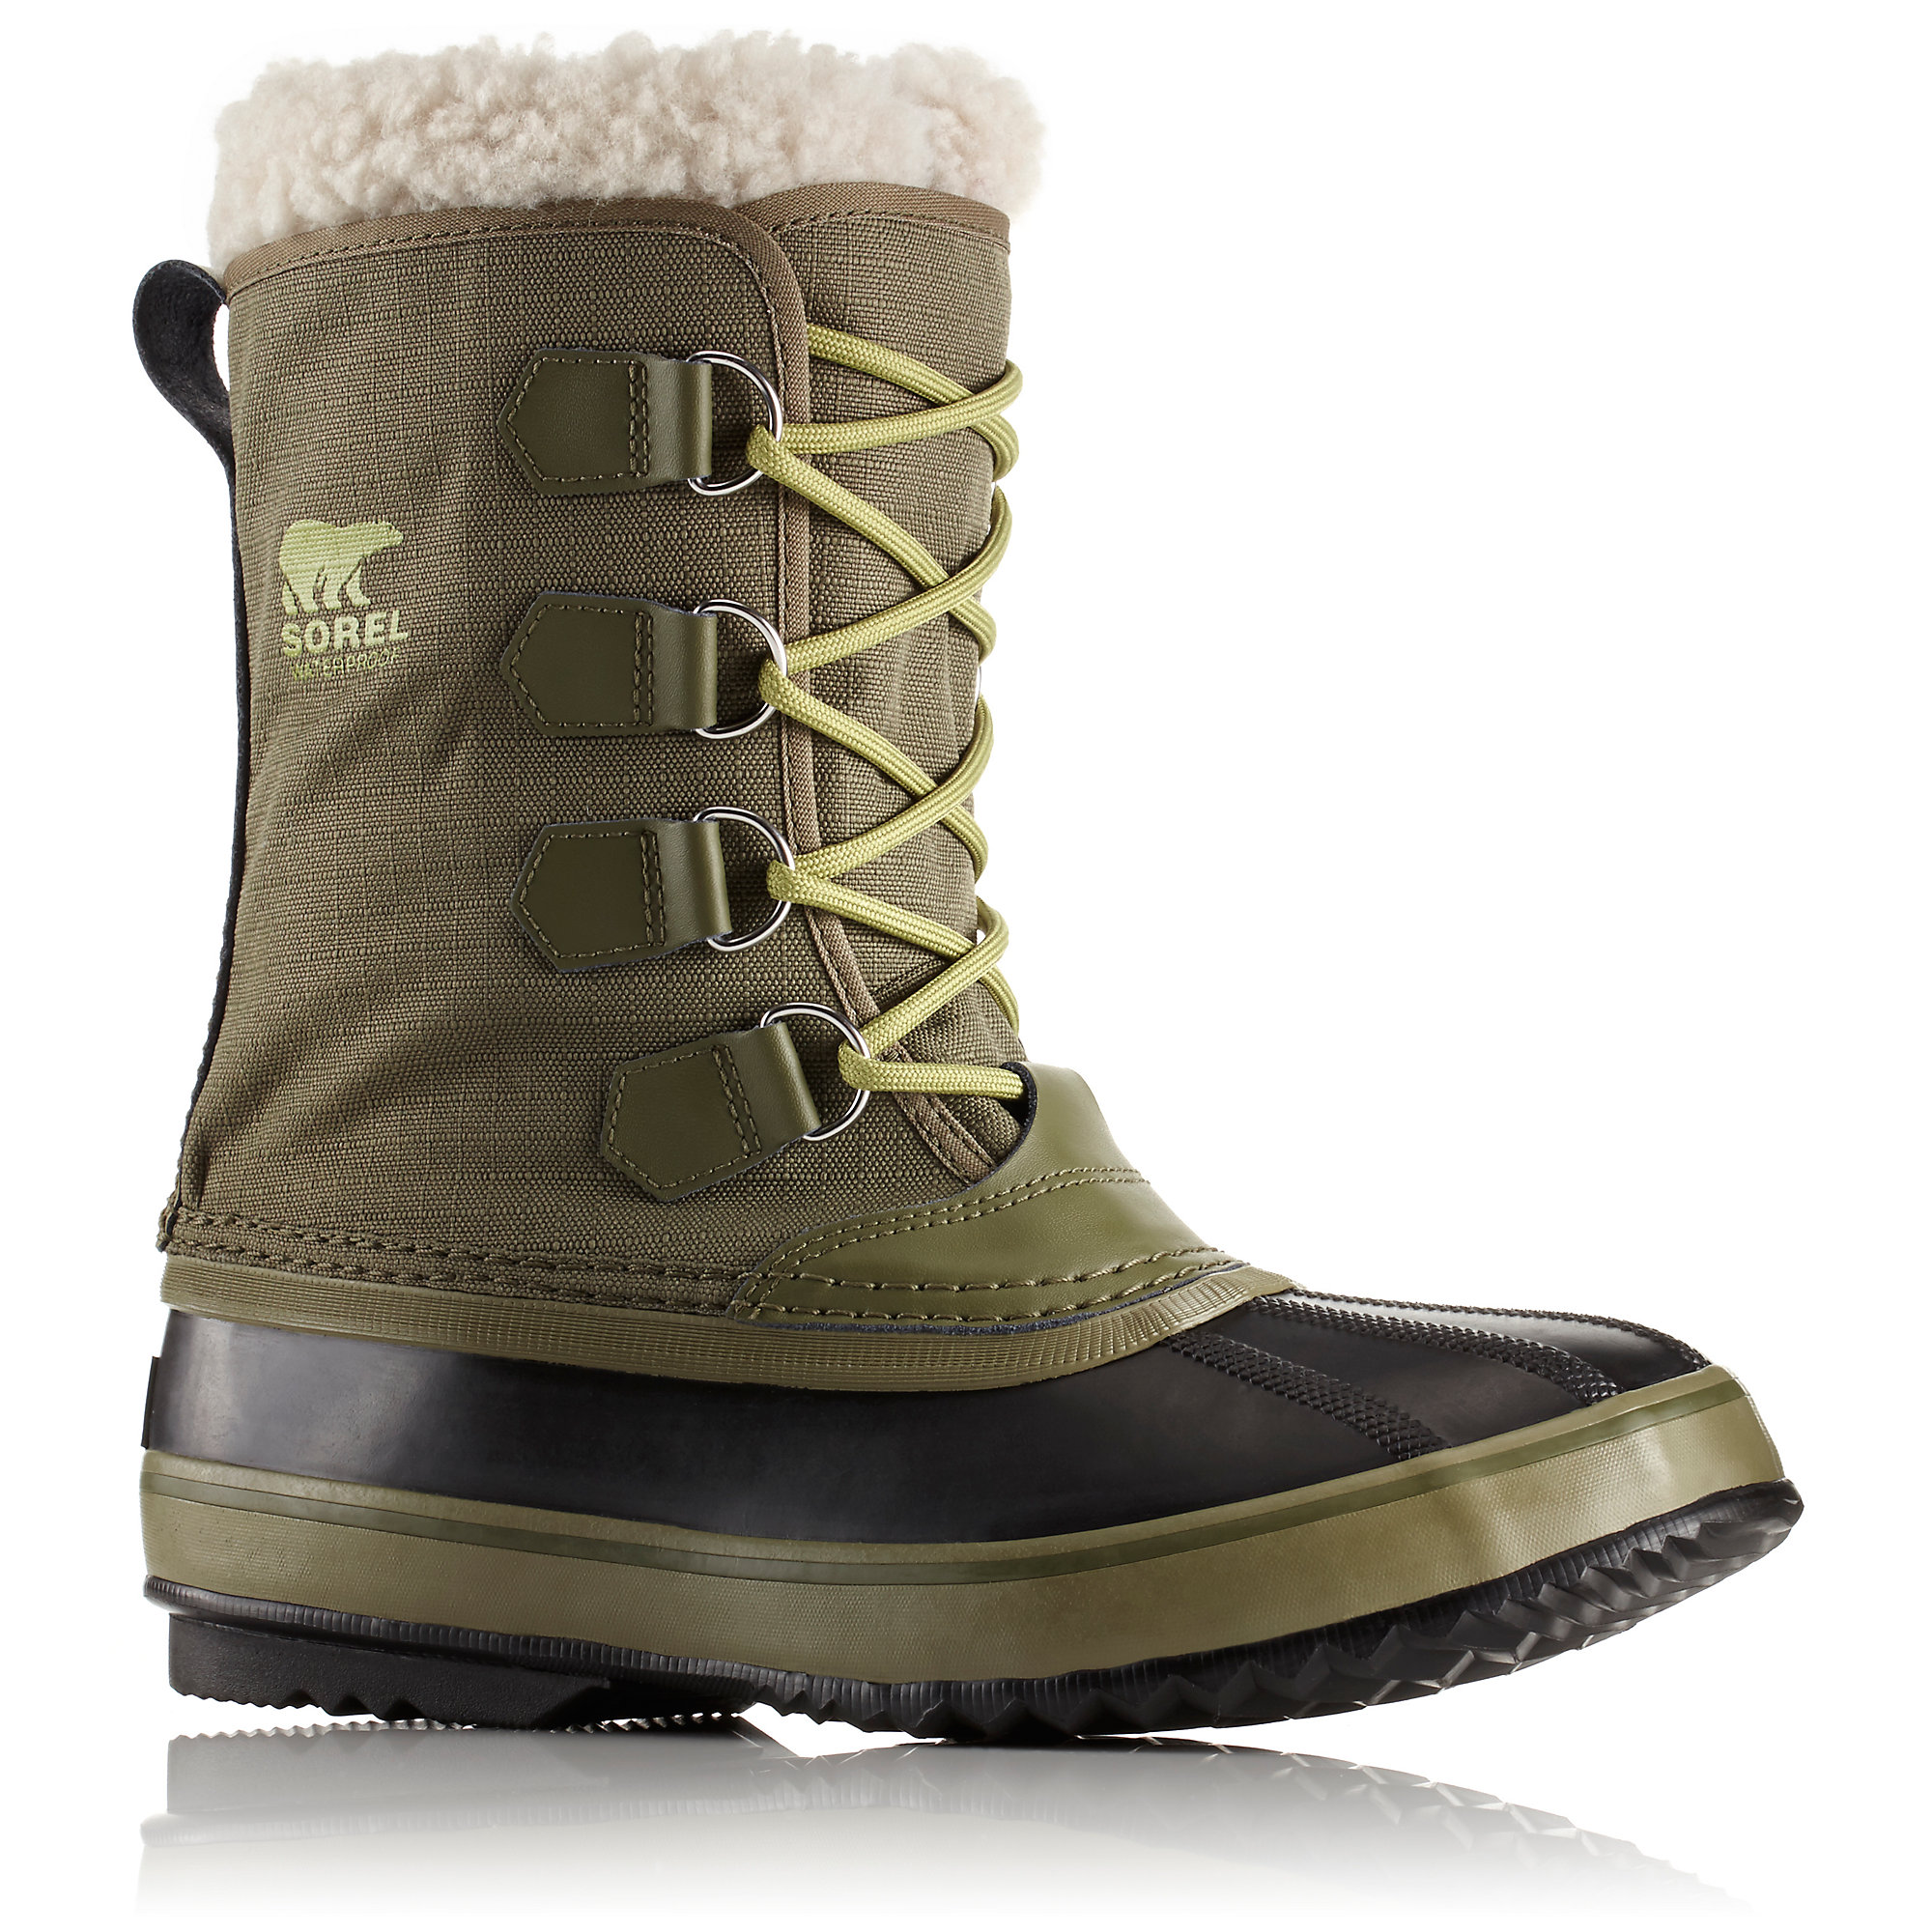 Sorel 1964 PAC  NYLON  383  8-